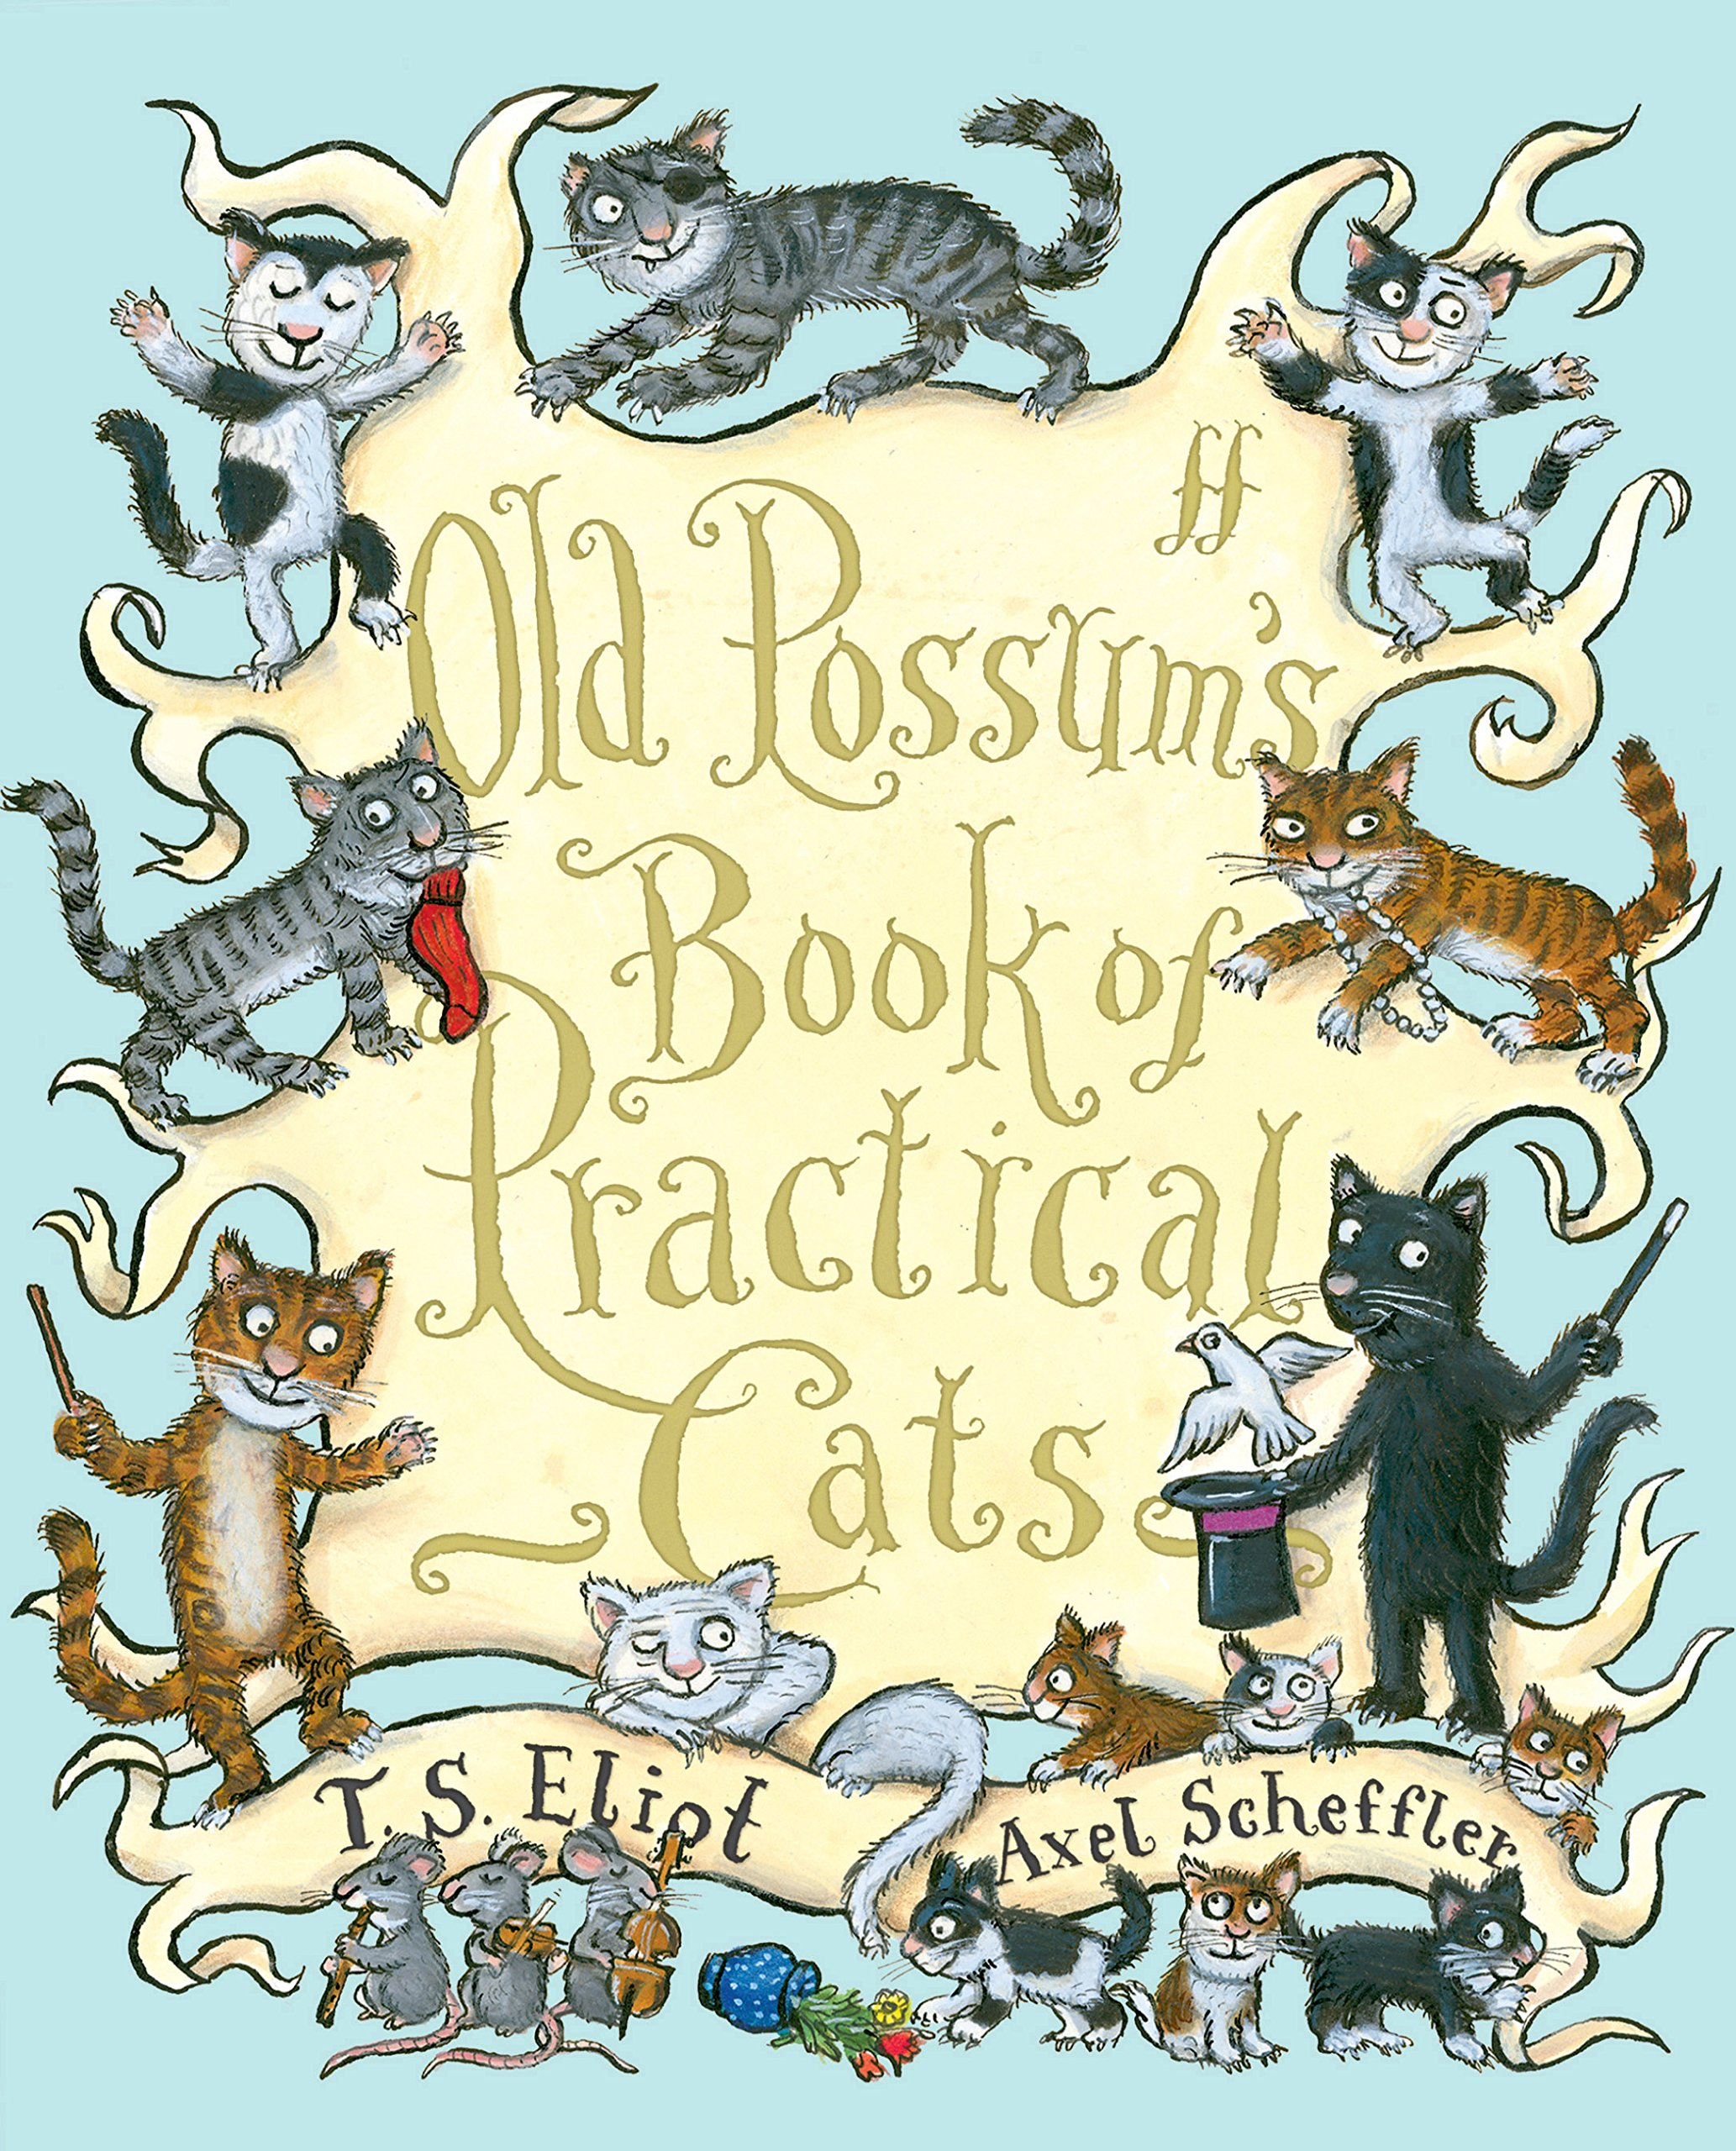 Old possums book of practical cats t s eliot axel scheffler old possums book of practical cats t s eliot axel scheffler 9780571240616 amazon books fandeluxe Choice Image